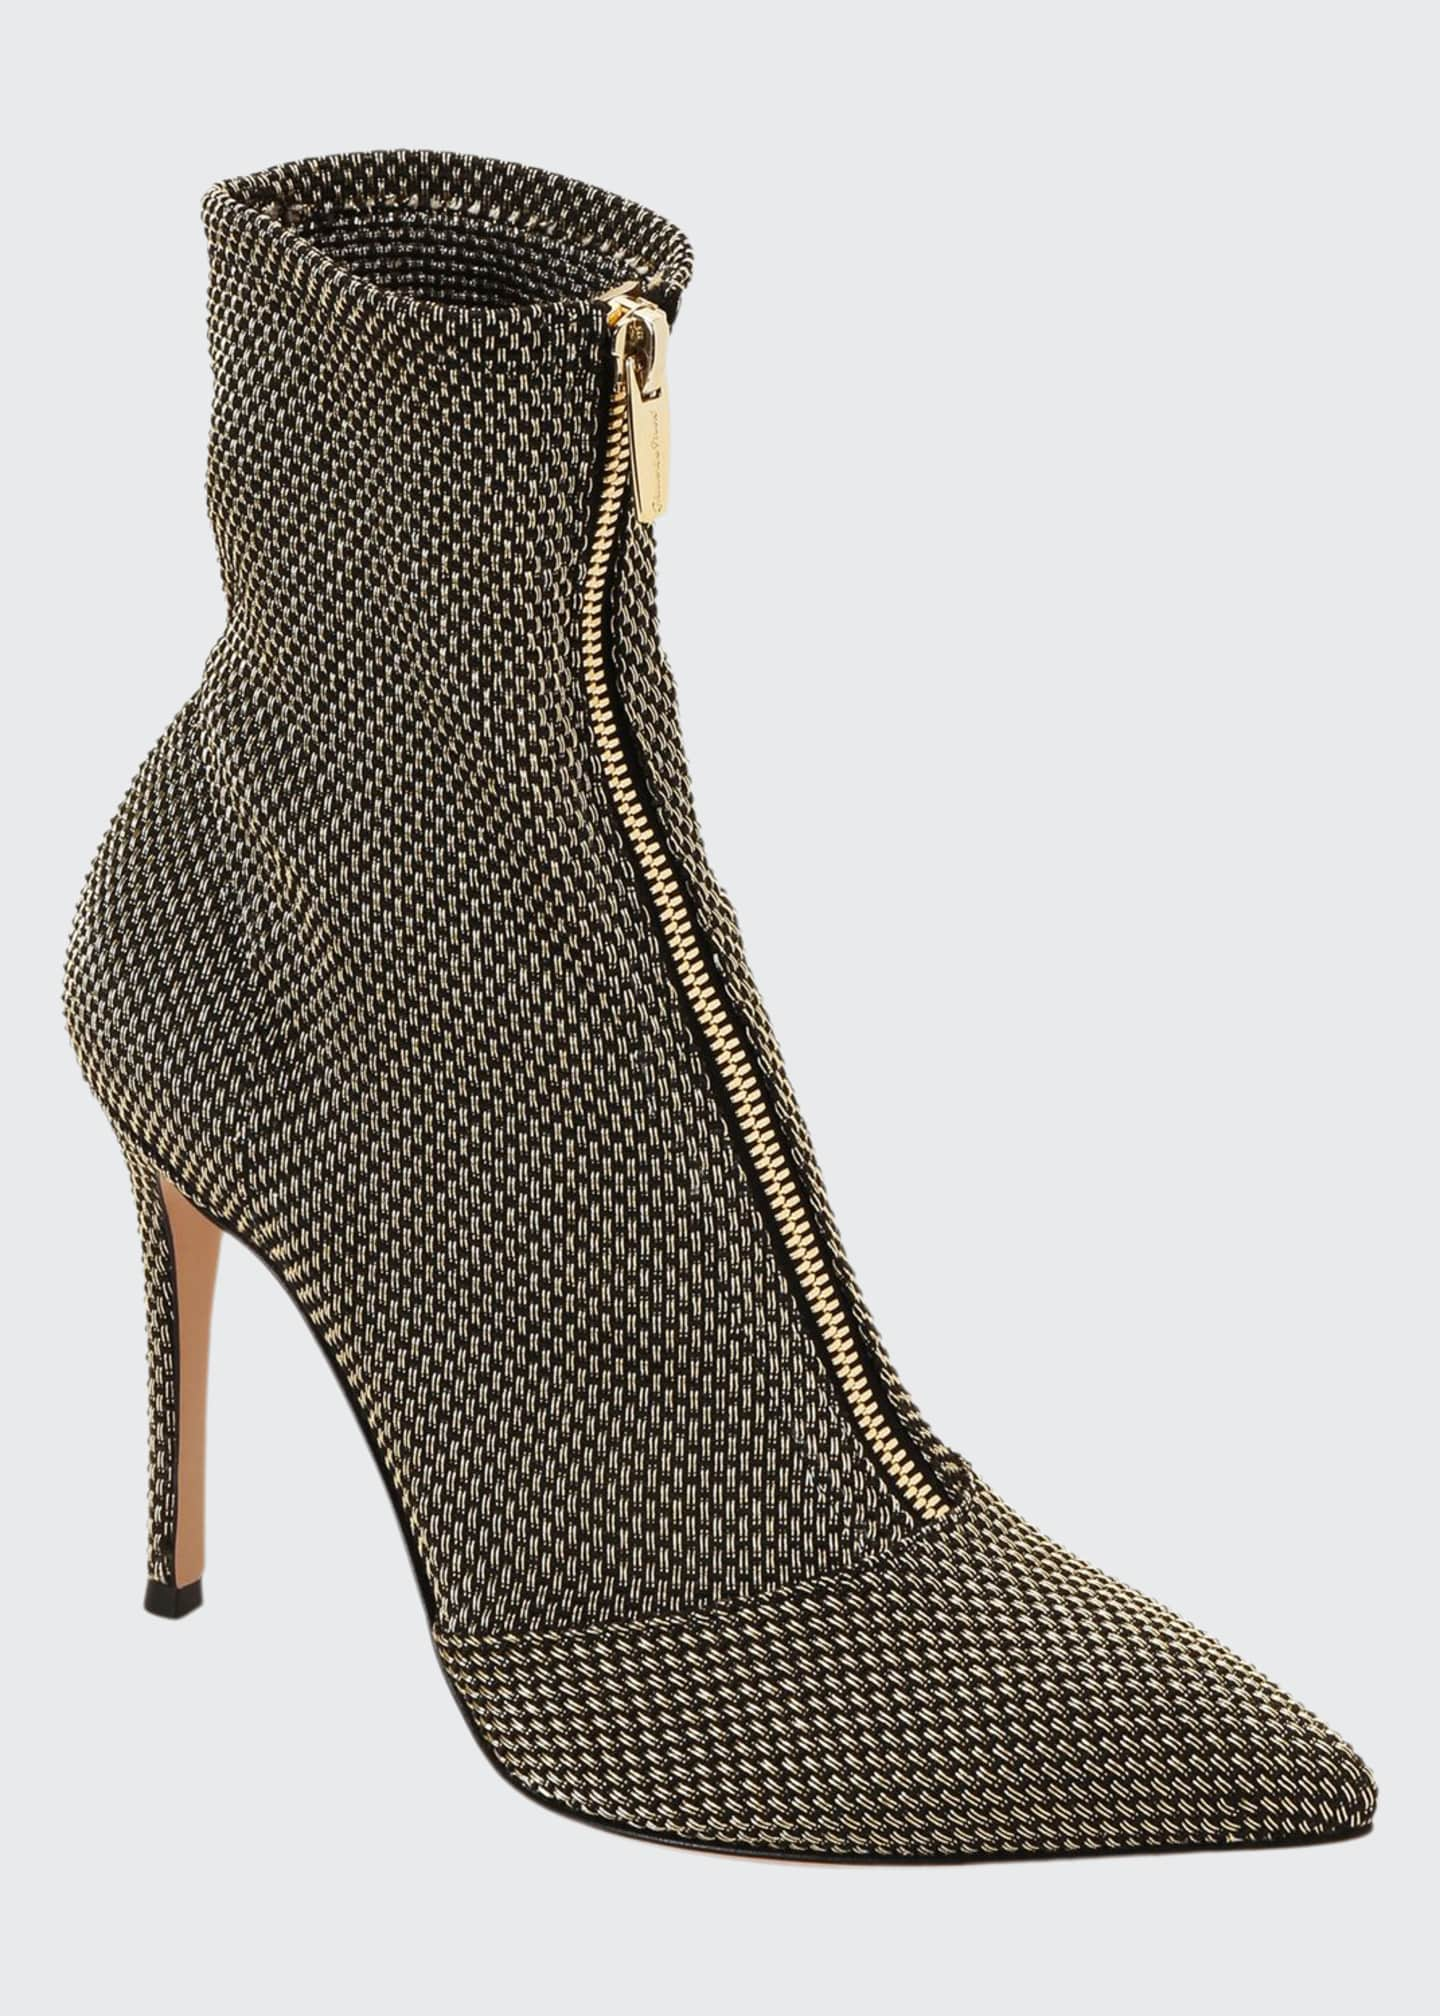 Gianvito Rossi Woven Metallic Zip Booties